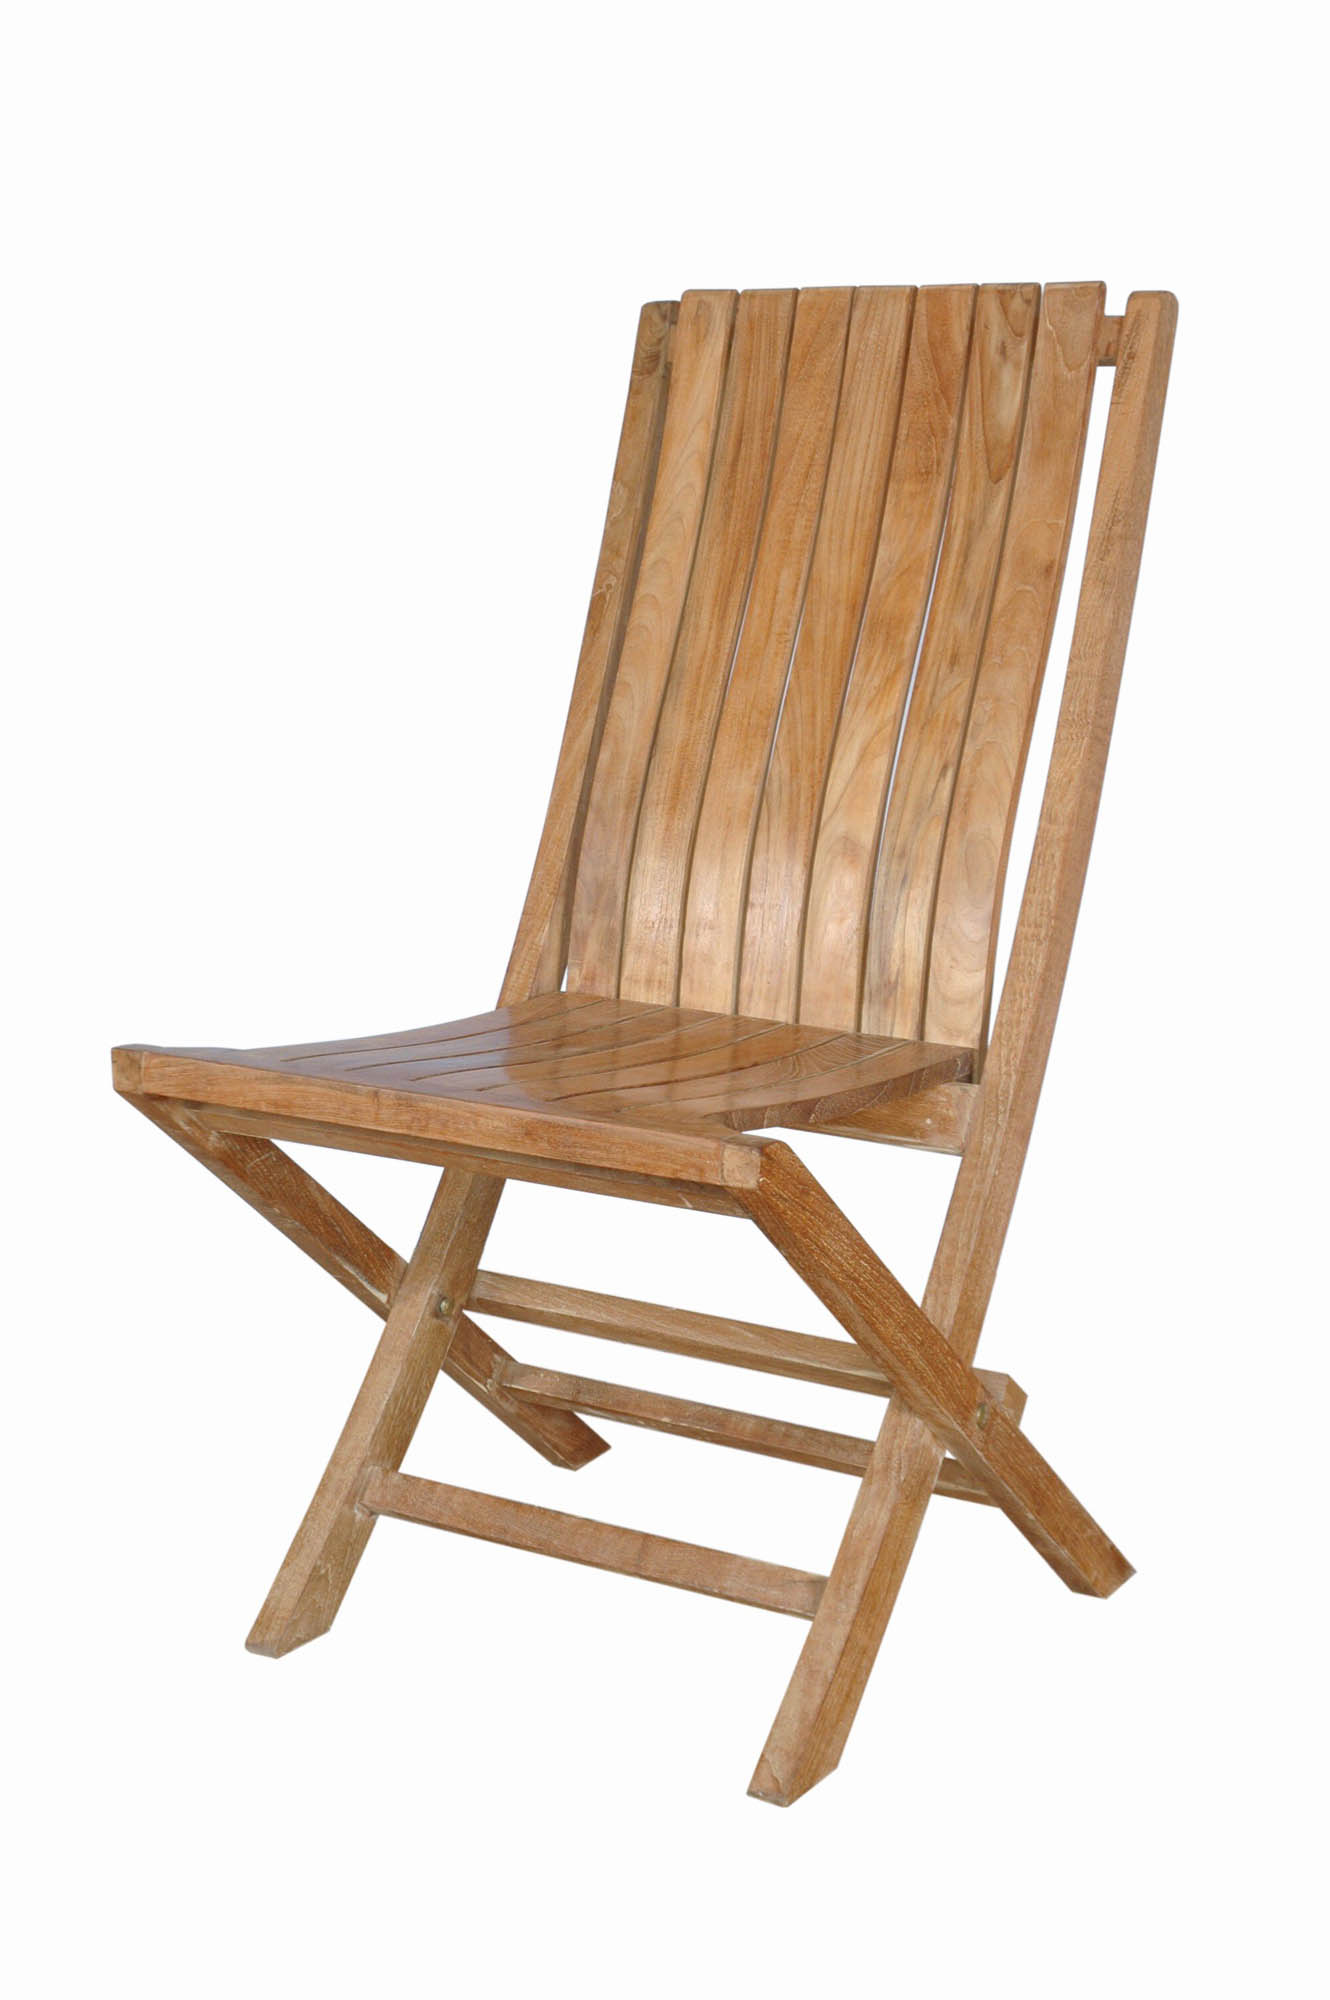 Comfortable patio chair comfortable lawn chairs for Comfortable lawn furniture